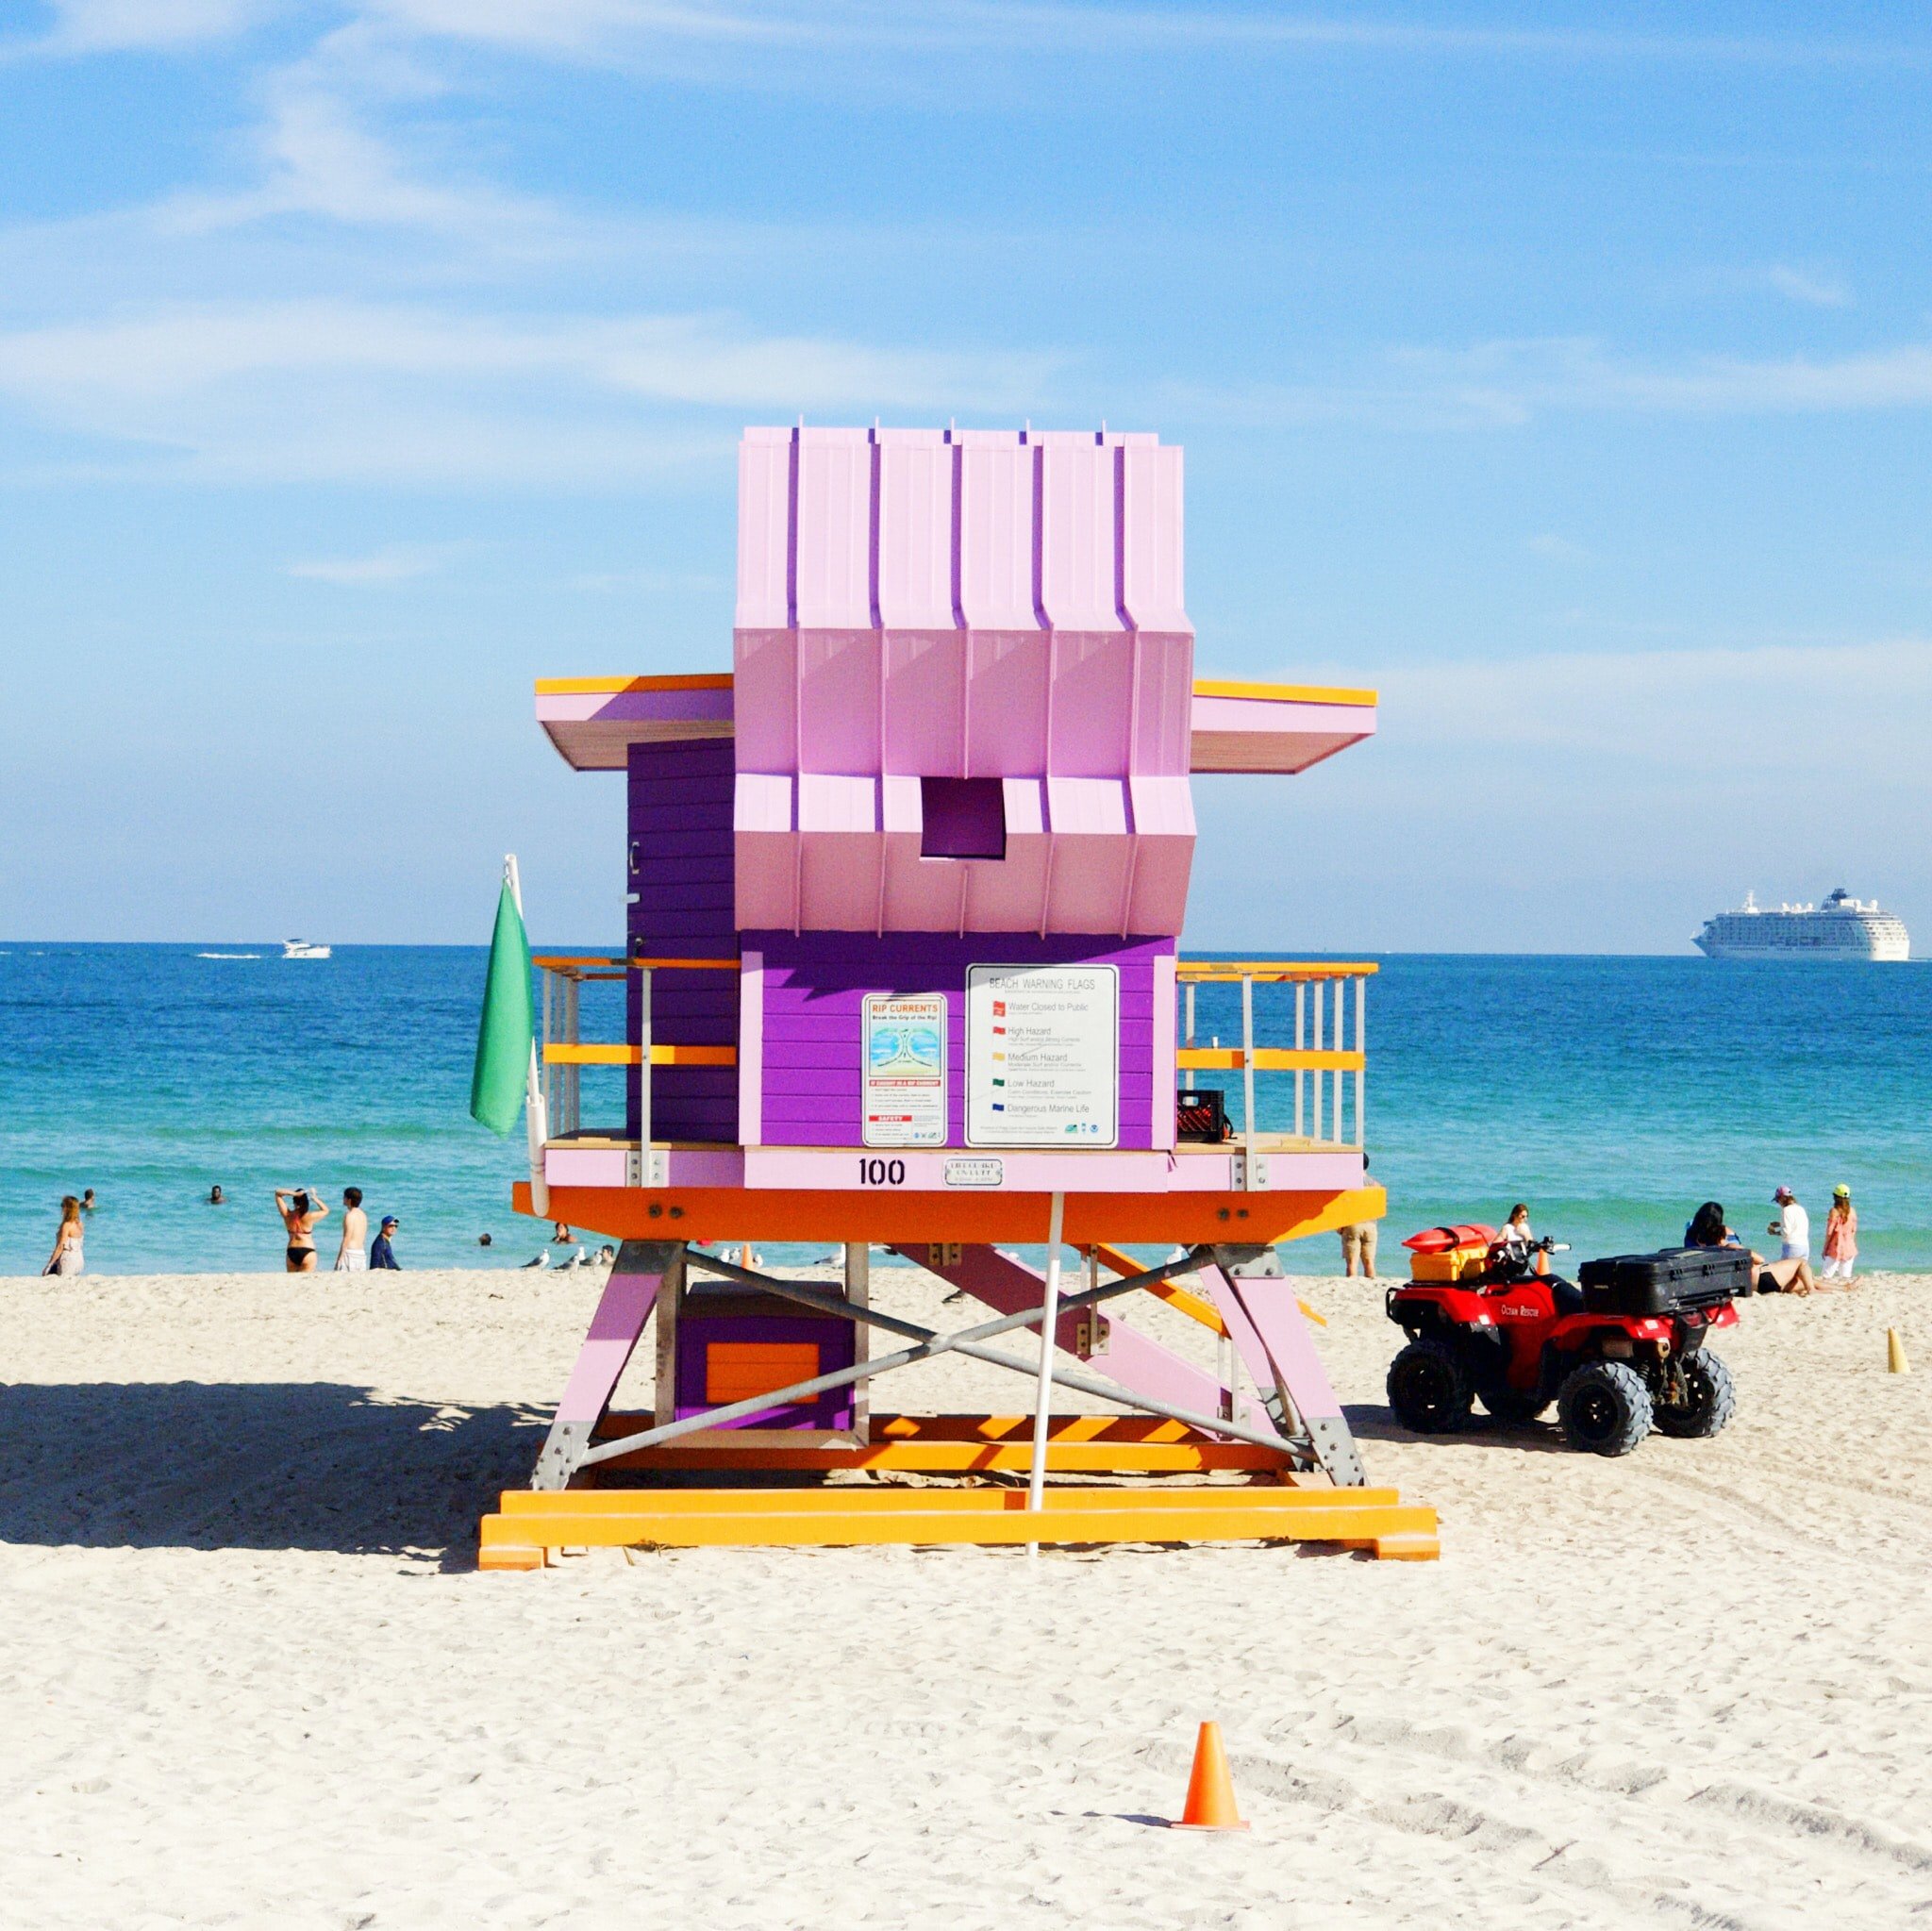 pink and multicolored lifeguard house near ocean at daytime